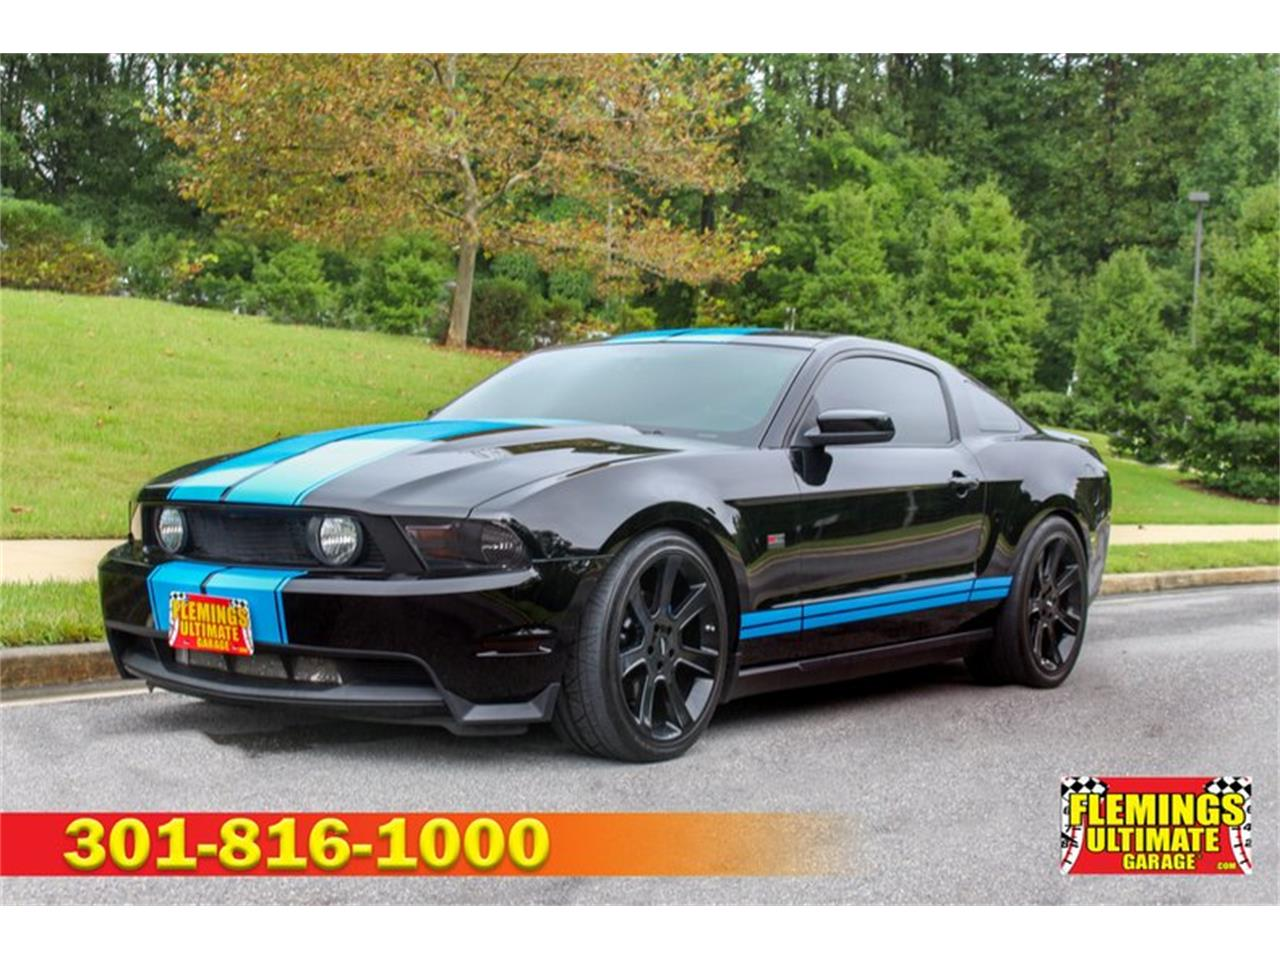 2010 Ford Mustang For Sale >> For Sale 2010 Ford Mustang In Rockville Maryland